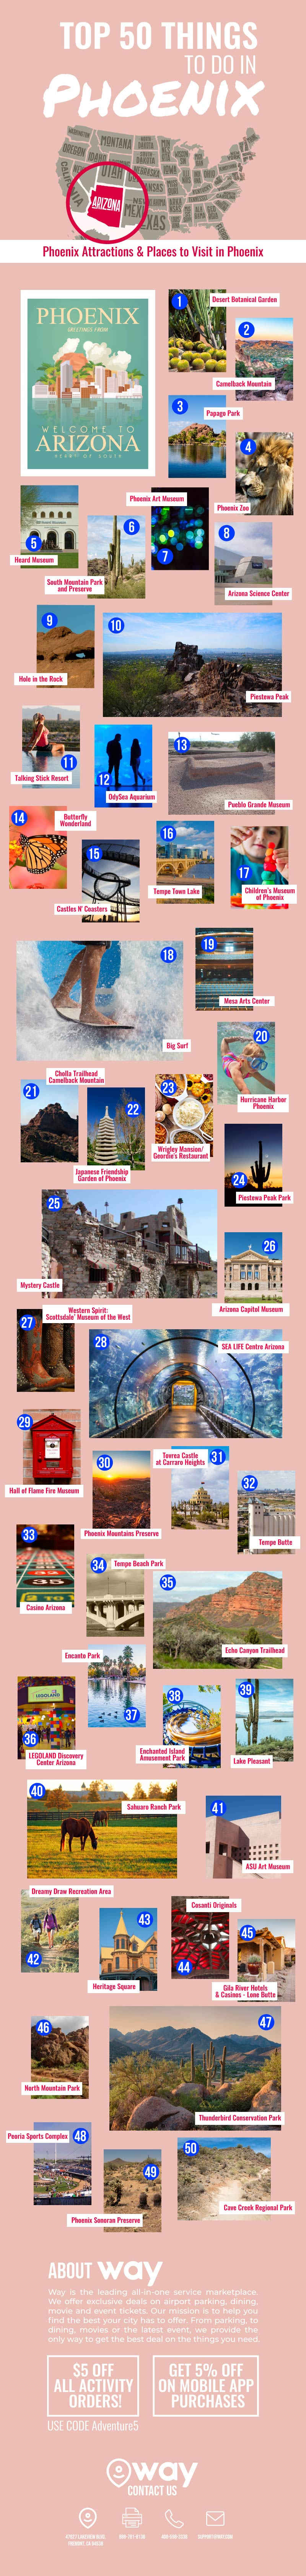 50 Must-Do, Must-See Places in Phoenix Arizona - Infographic